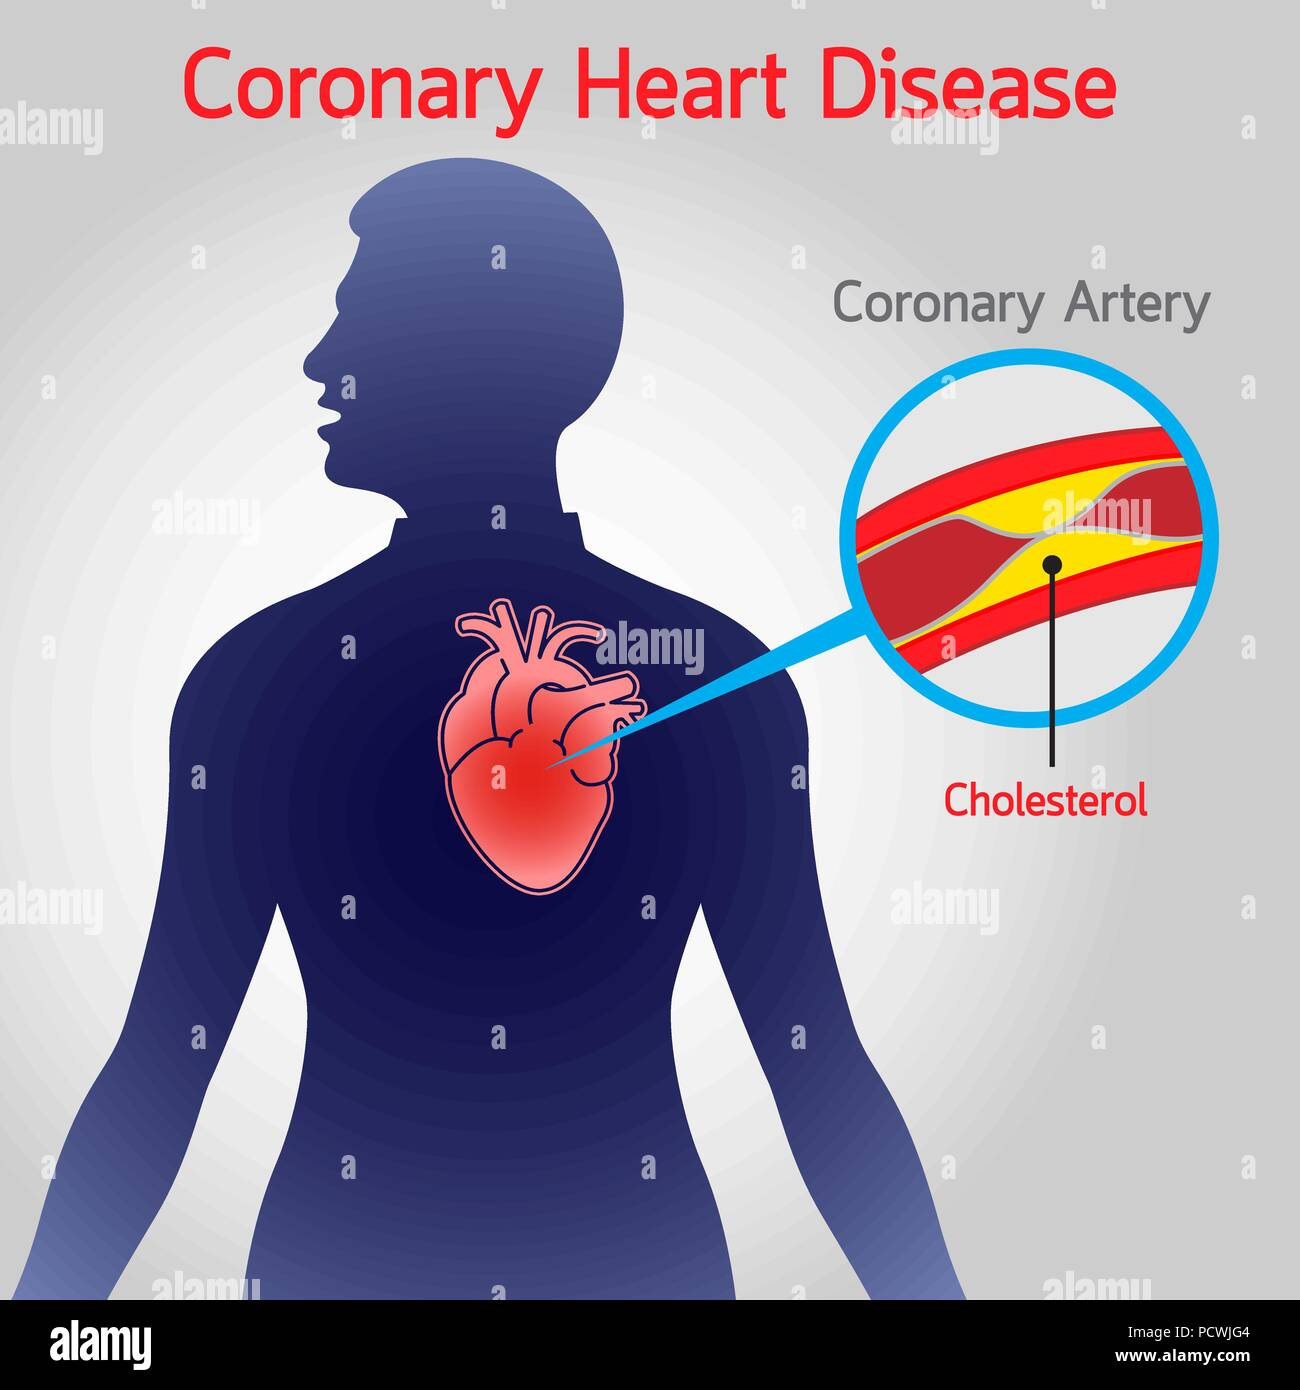 Pencil heart disease diagram circuit connection diagram coronary heart disease stock photos coronary heart disease stock rh alamy com causes of heart disease ccuart Image collections